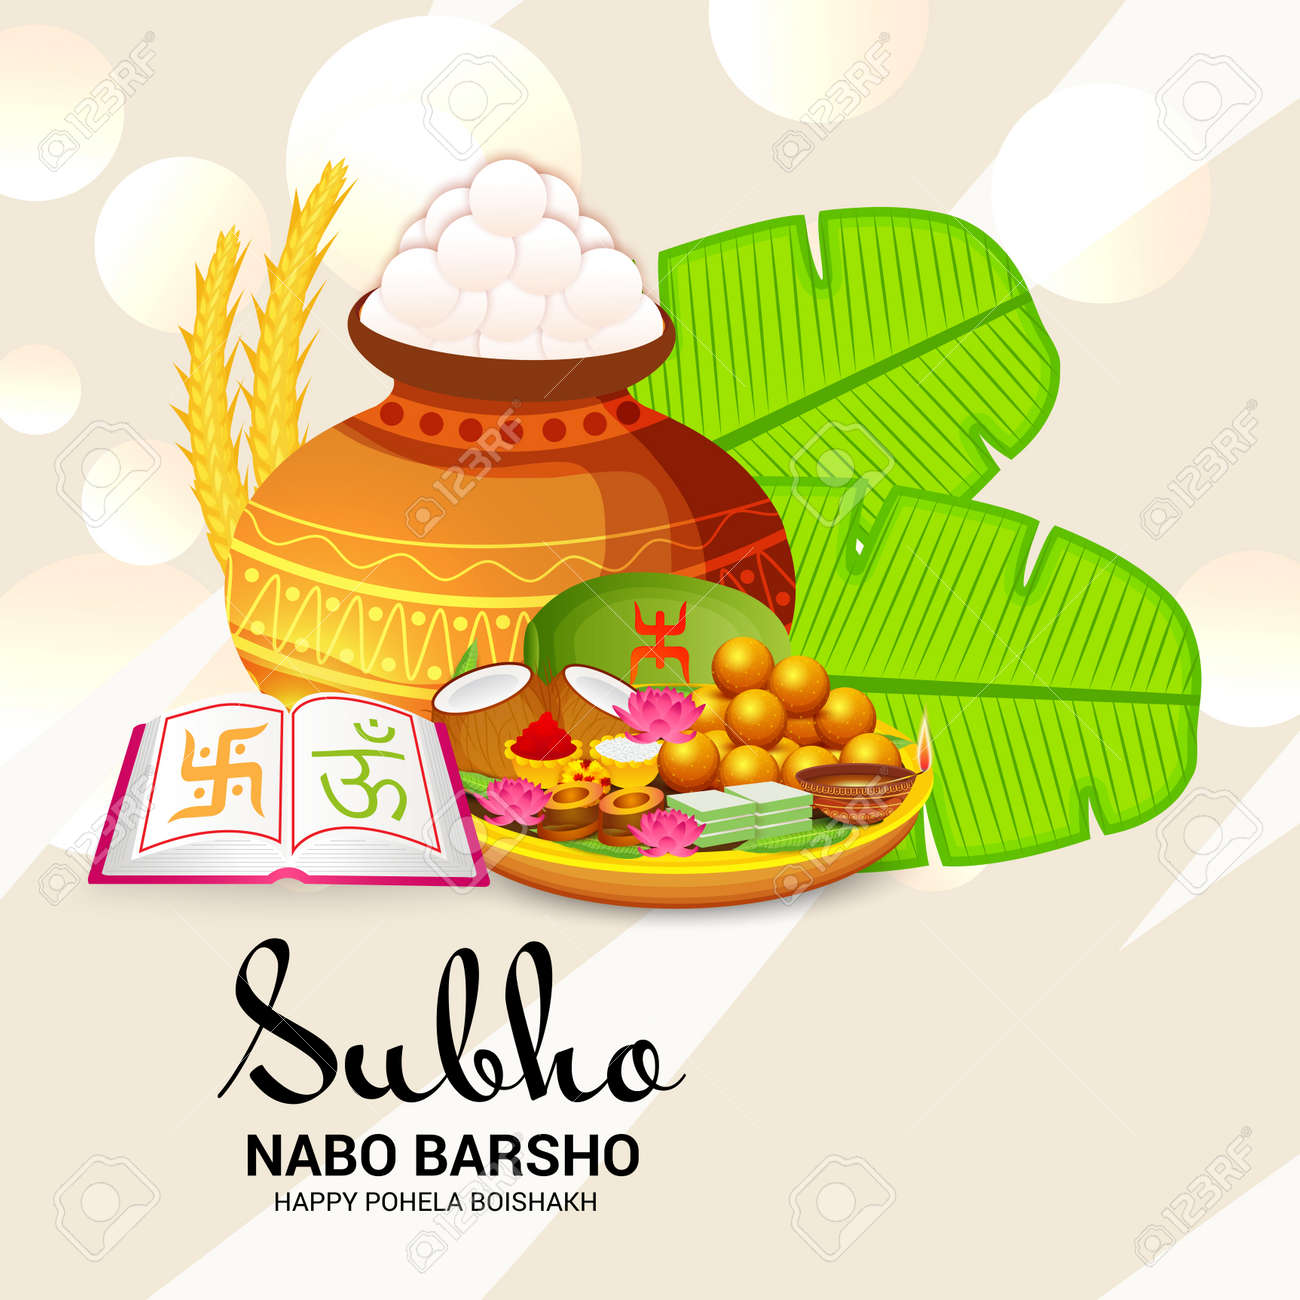 Bengali New Year Subho Nabo Barsho Happy Pohela Boishakh Banner Stock Vector